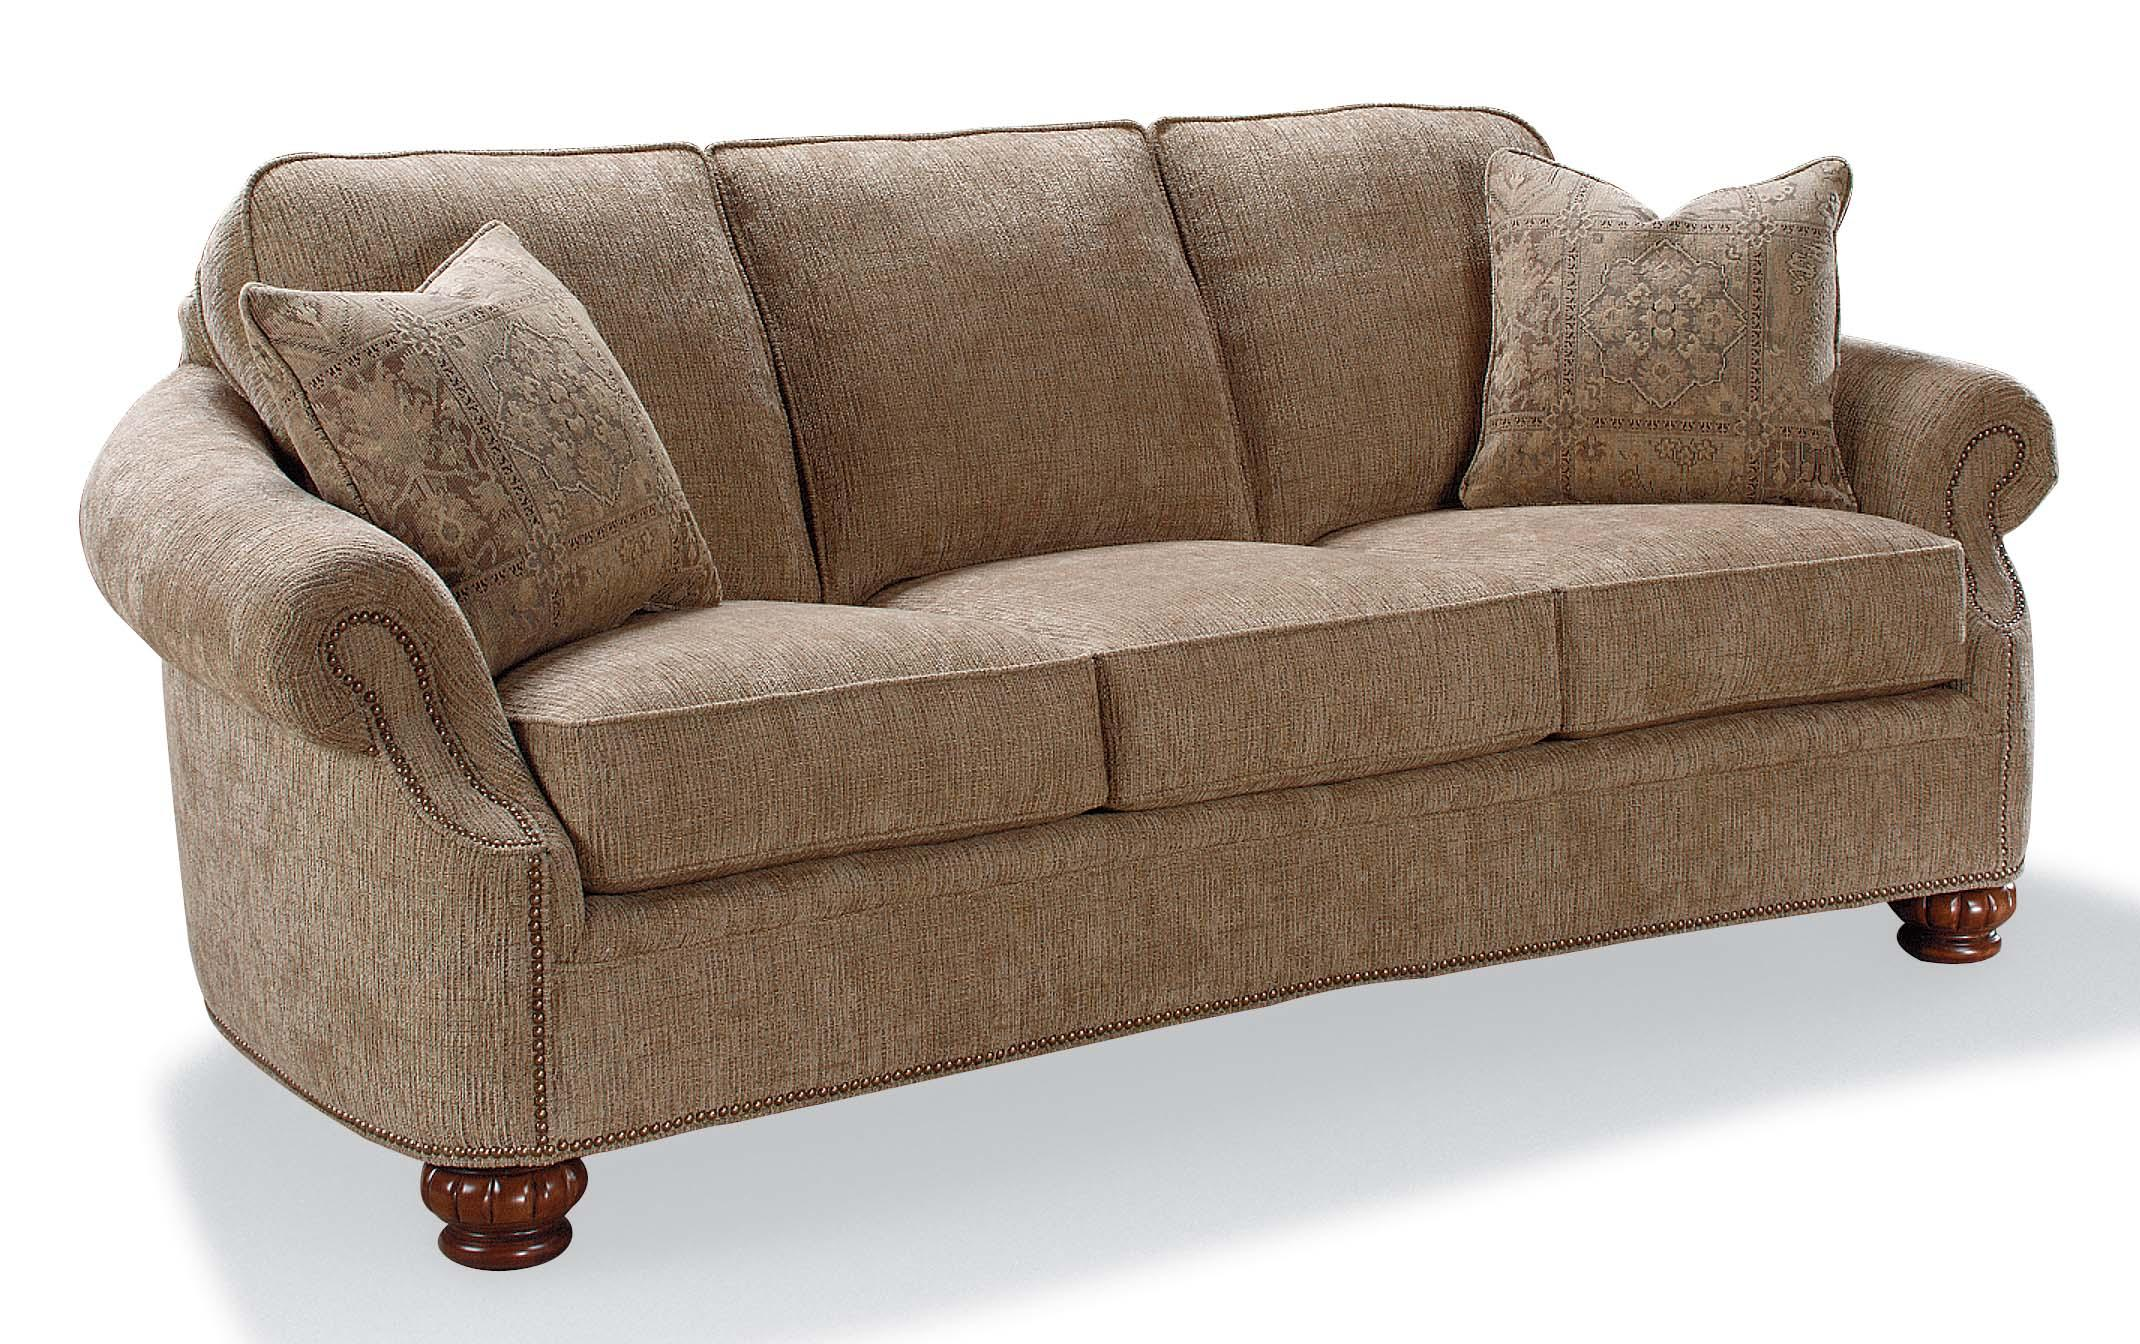 Fairfield Sofa Accents Rolled Arm Accent Sofa With Nailhead Trim Belfort Furniture Sofas